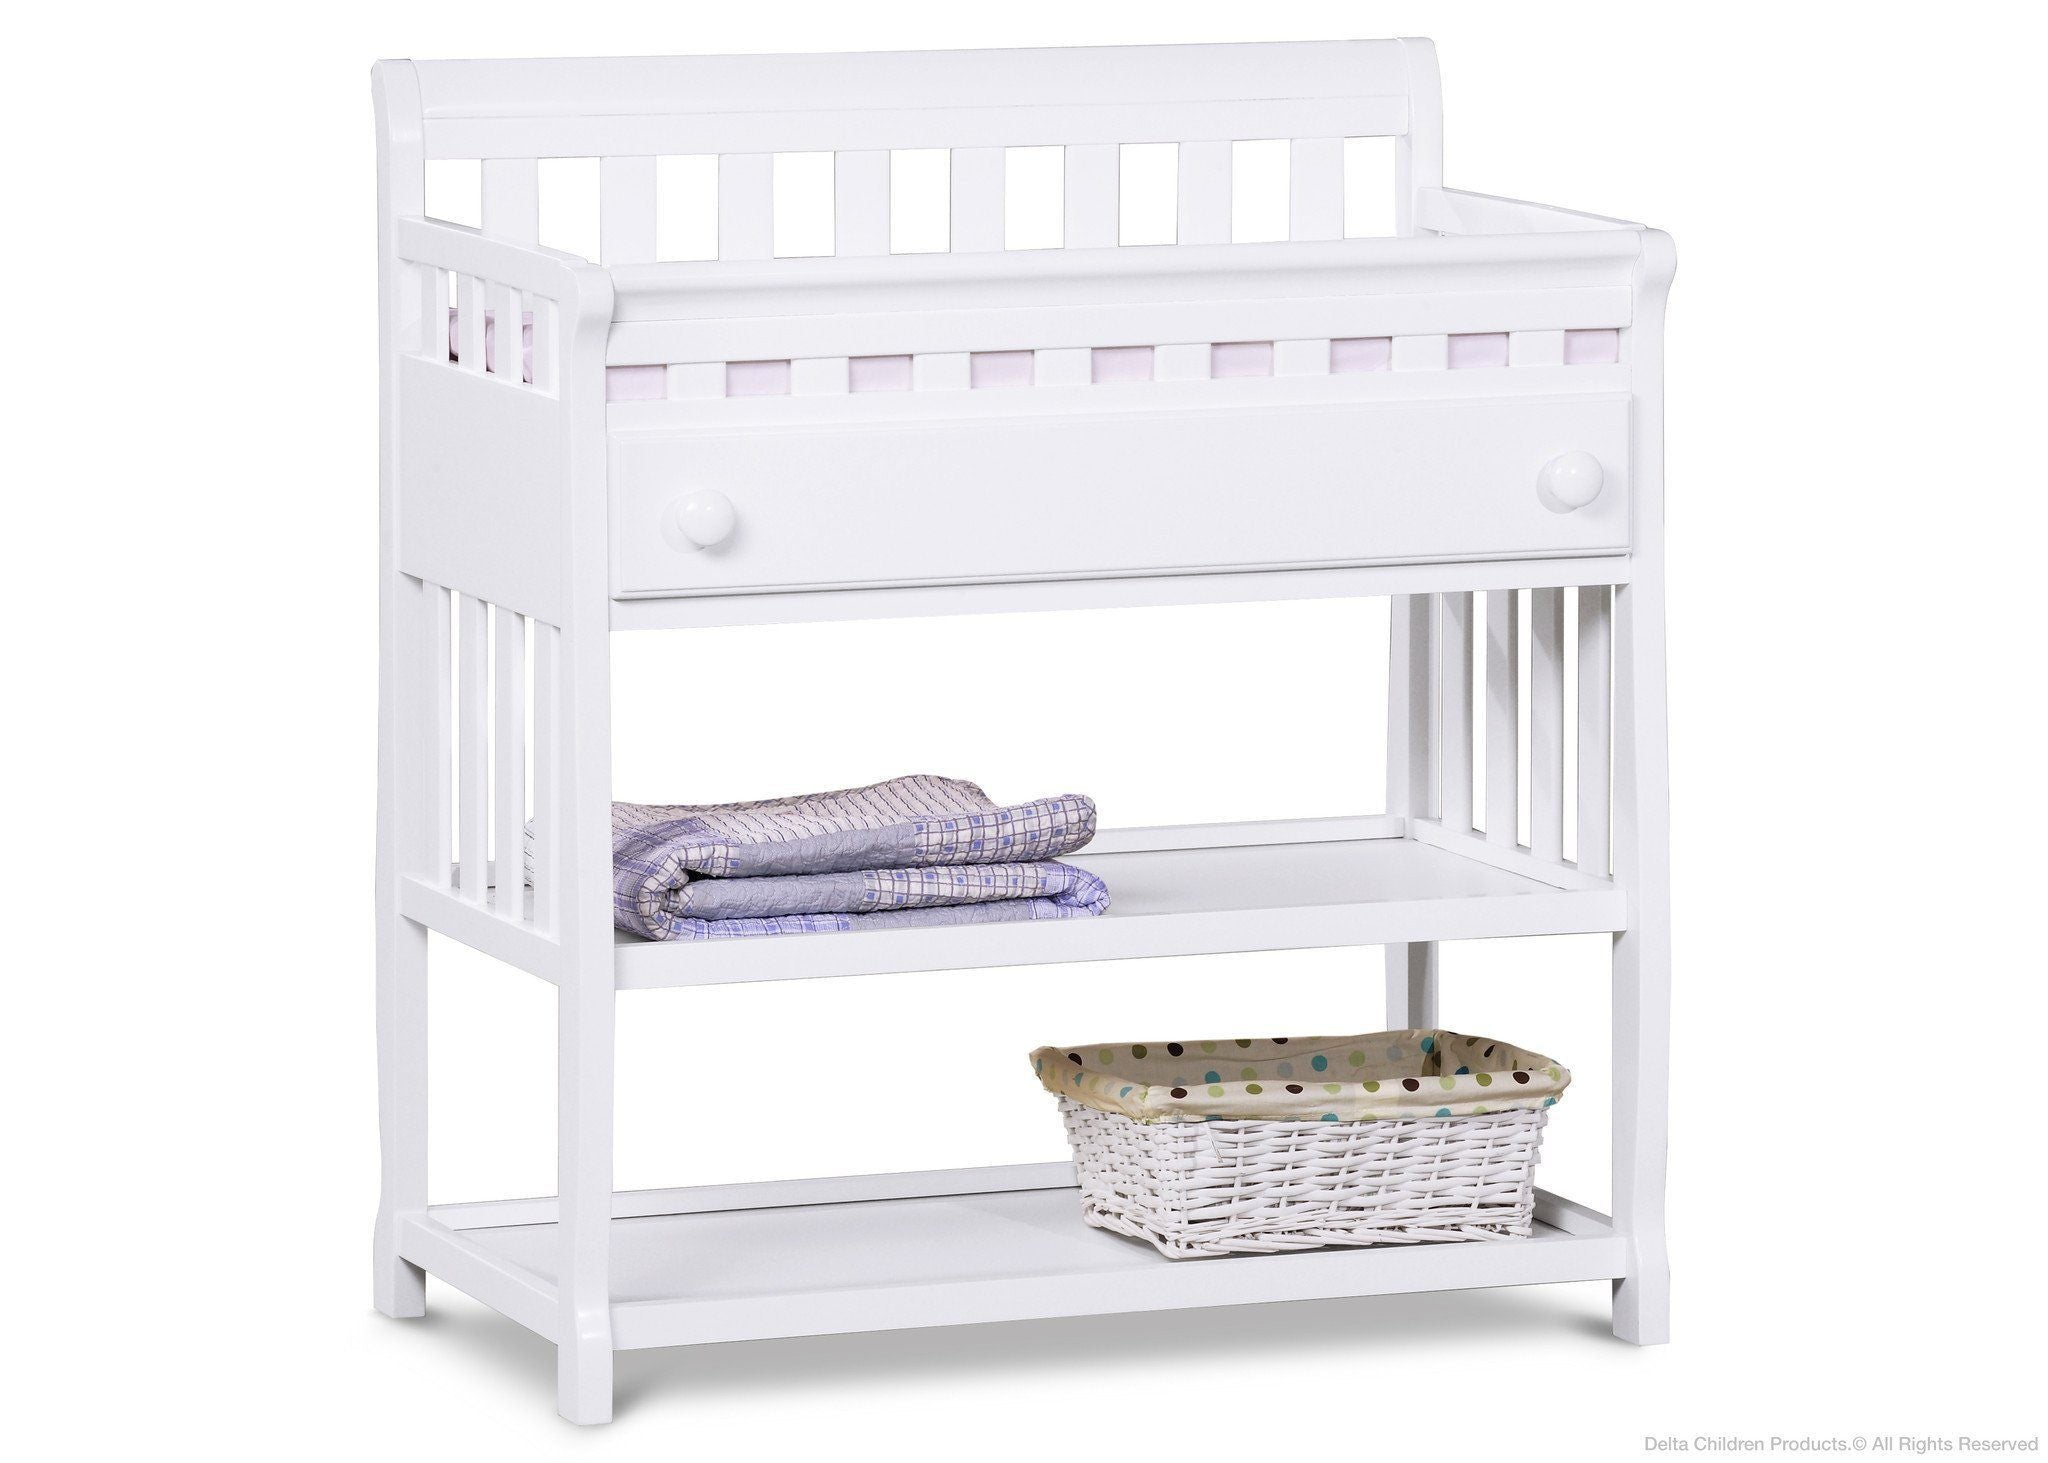 Delta Children White (100) Solutions Changing Table Side View with Props a3a